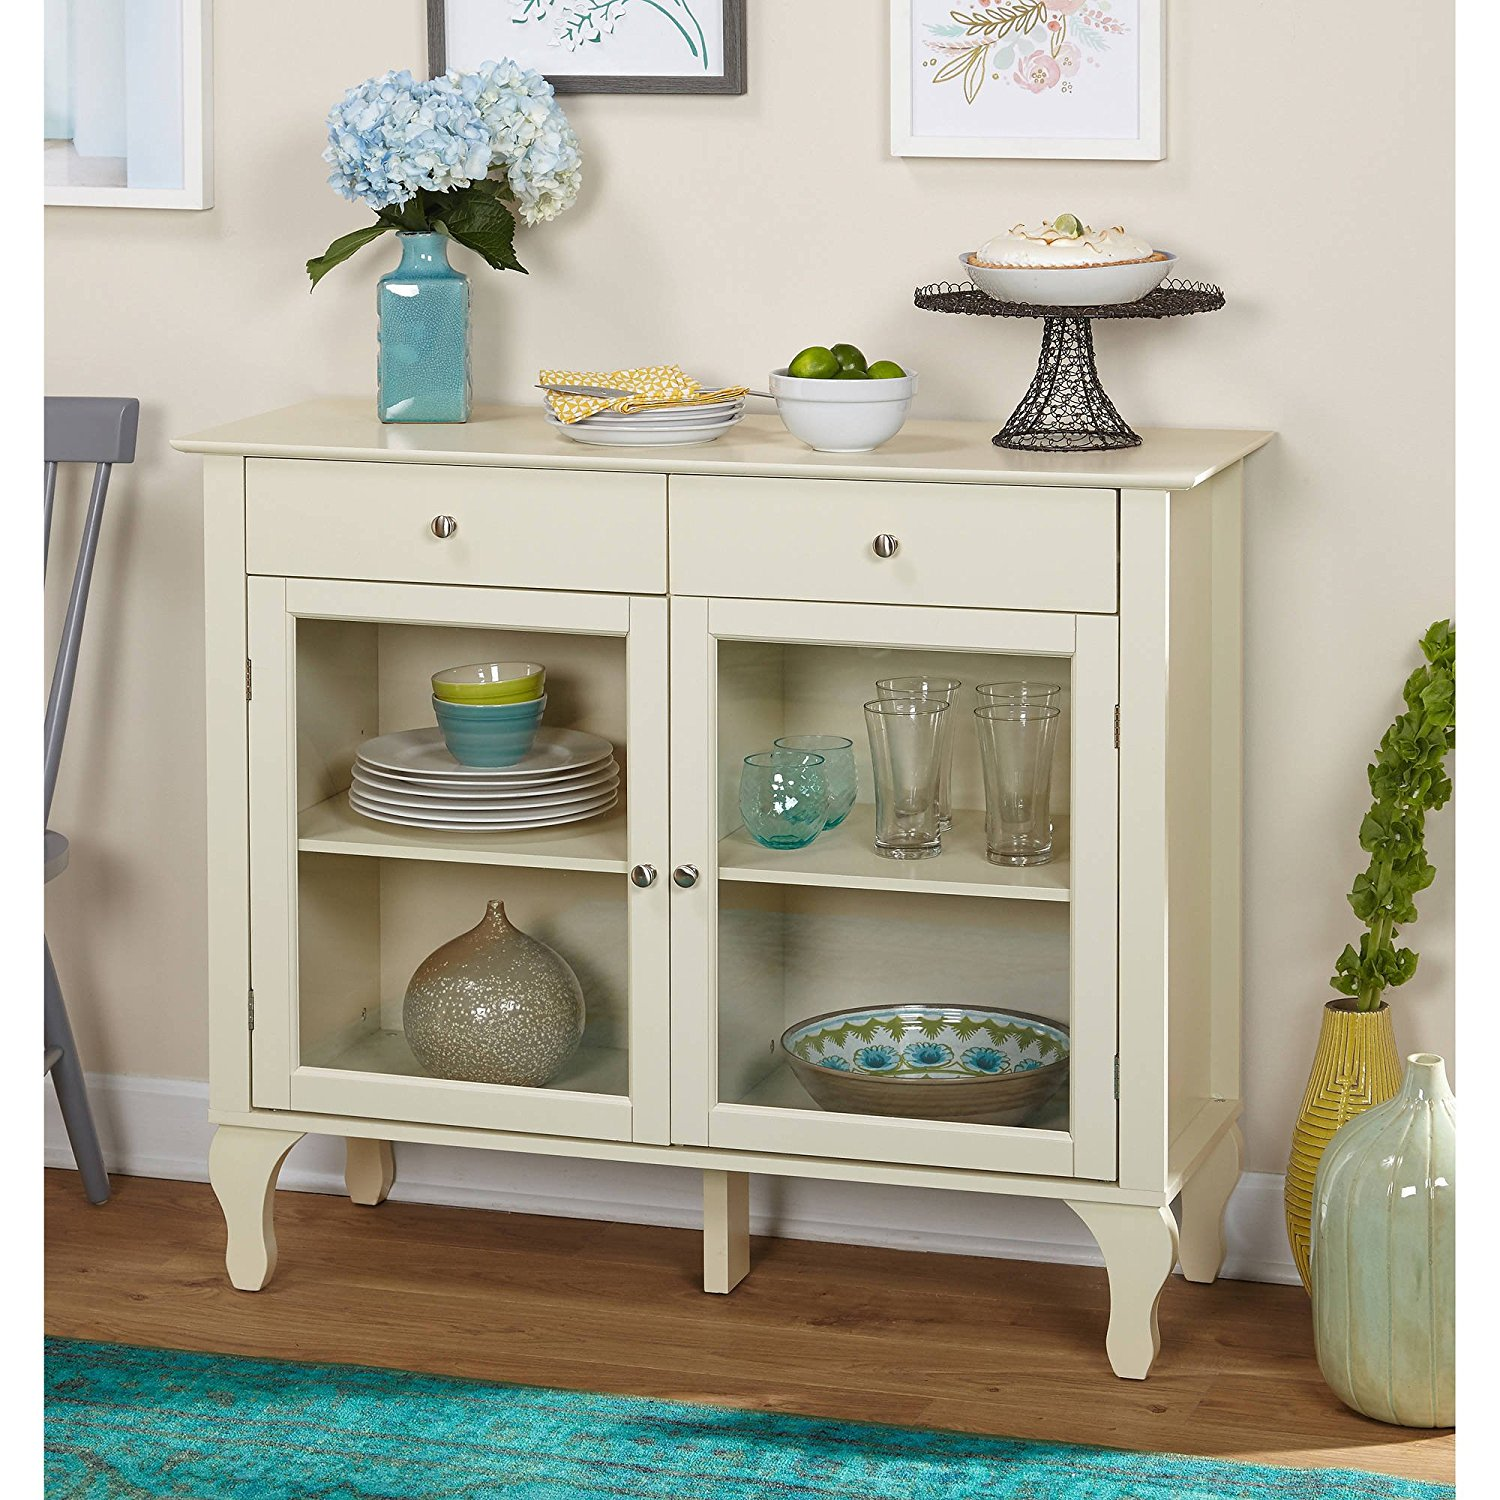 Drawer Buffet, An Accent in your Kitchen, Storage Capacity, Practical Sideboard, Adjustable Shelves, Perfect Addition to your Interior, Attractive Furniture Item, Multiple Colors (Antique White)